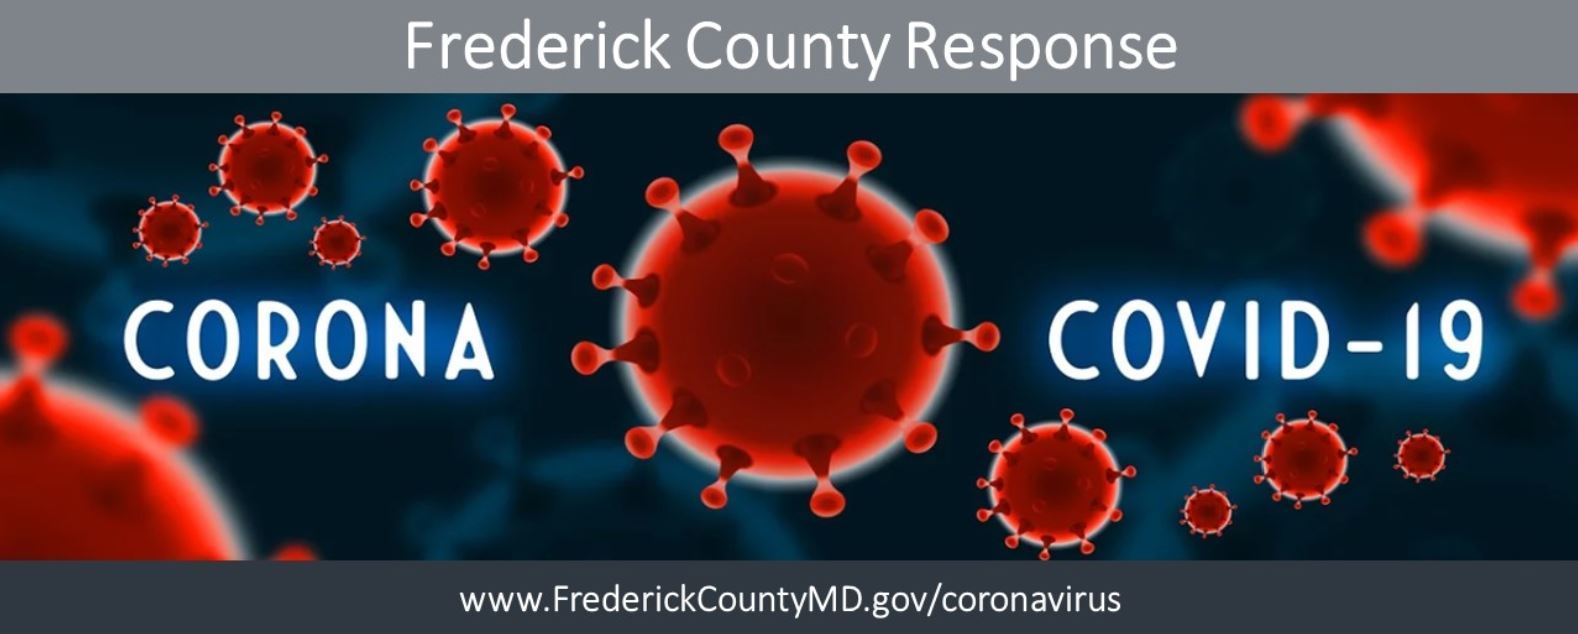 Coronavirus Covid 19 Resources Frederick County Md Official Website